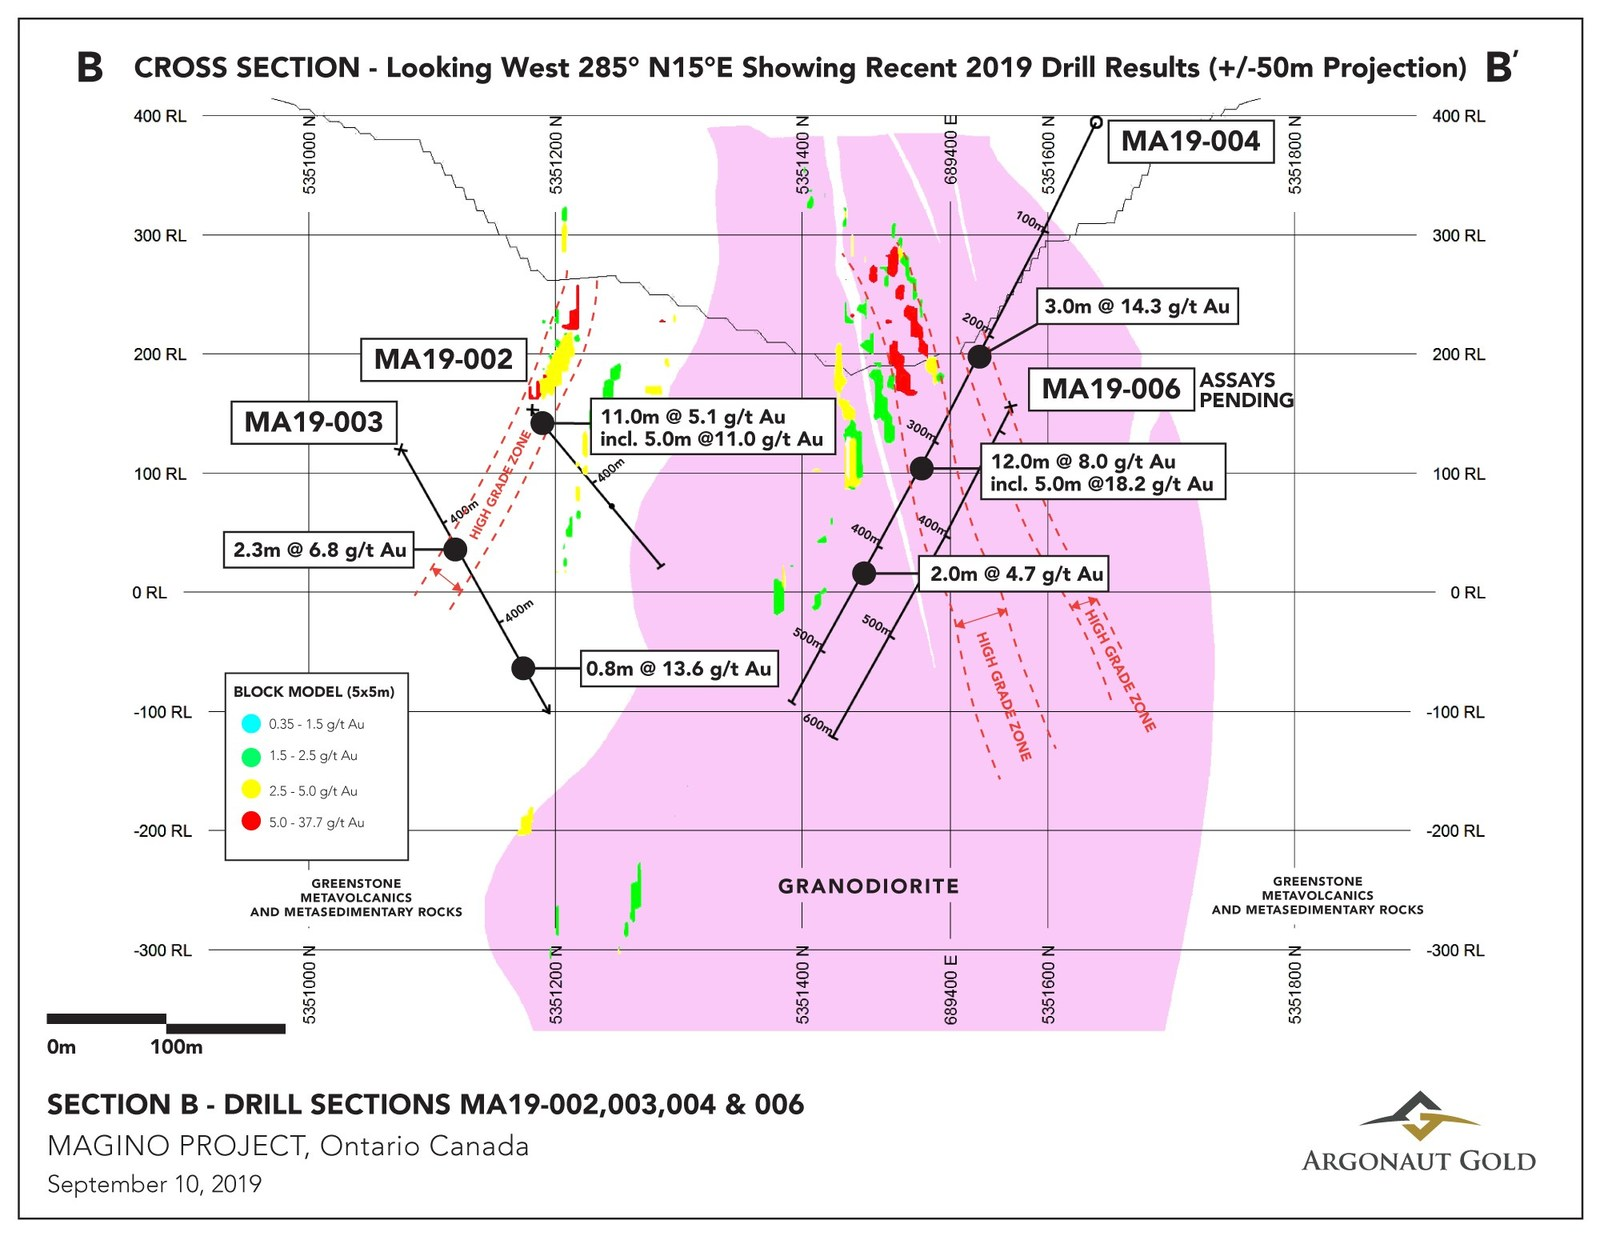 Cross Section B is a section though high grade zones looking west showing highlighted intercepts from drillholes MA19-002, MA19-003 and MA19-004.